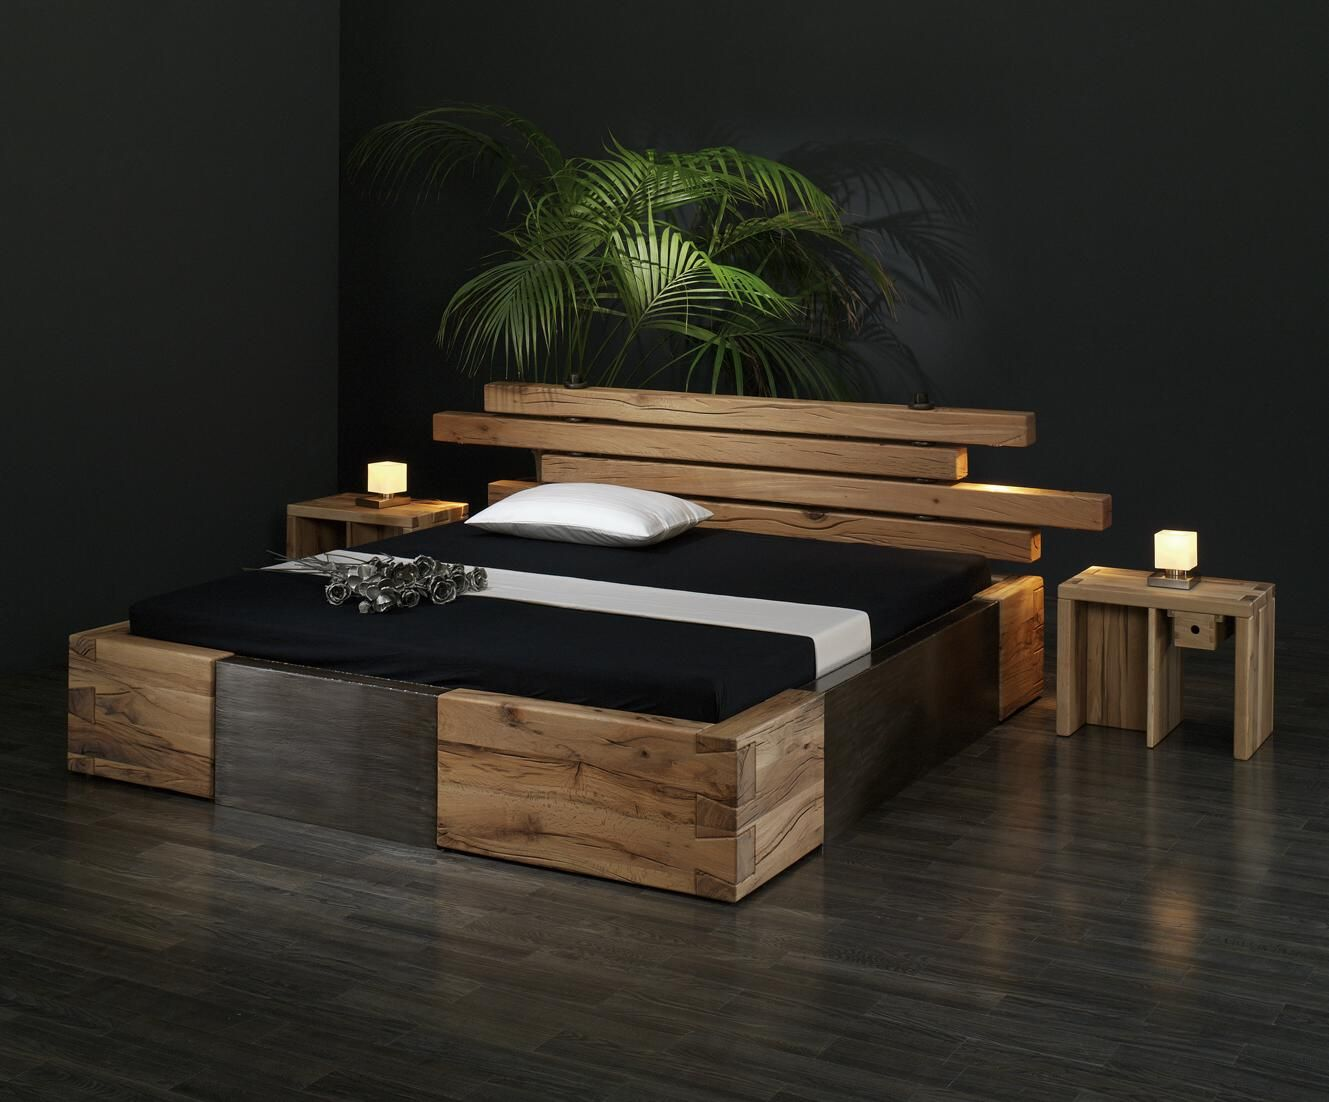 Bett Holz Pinterest Holz Bett Design Google Search In 2019 Holzbetten